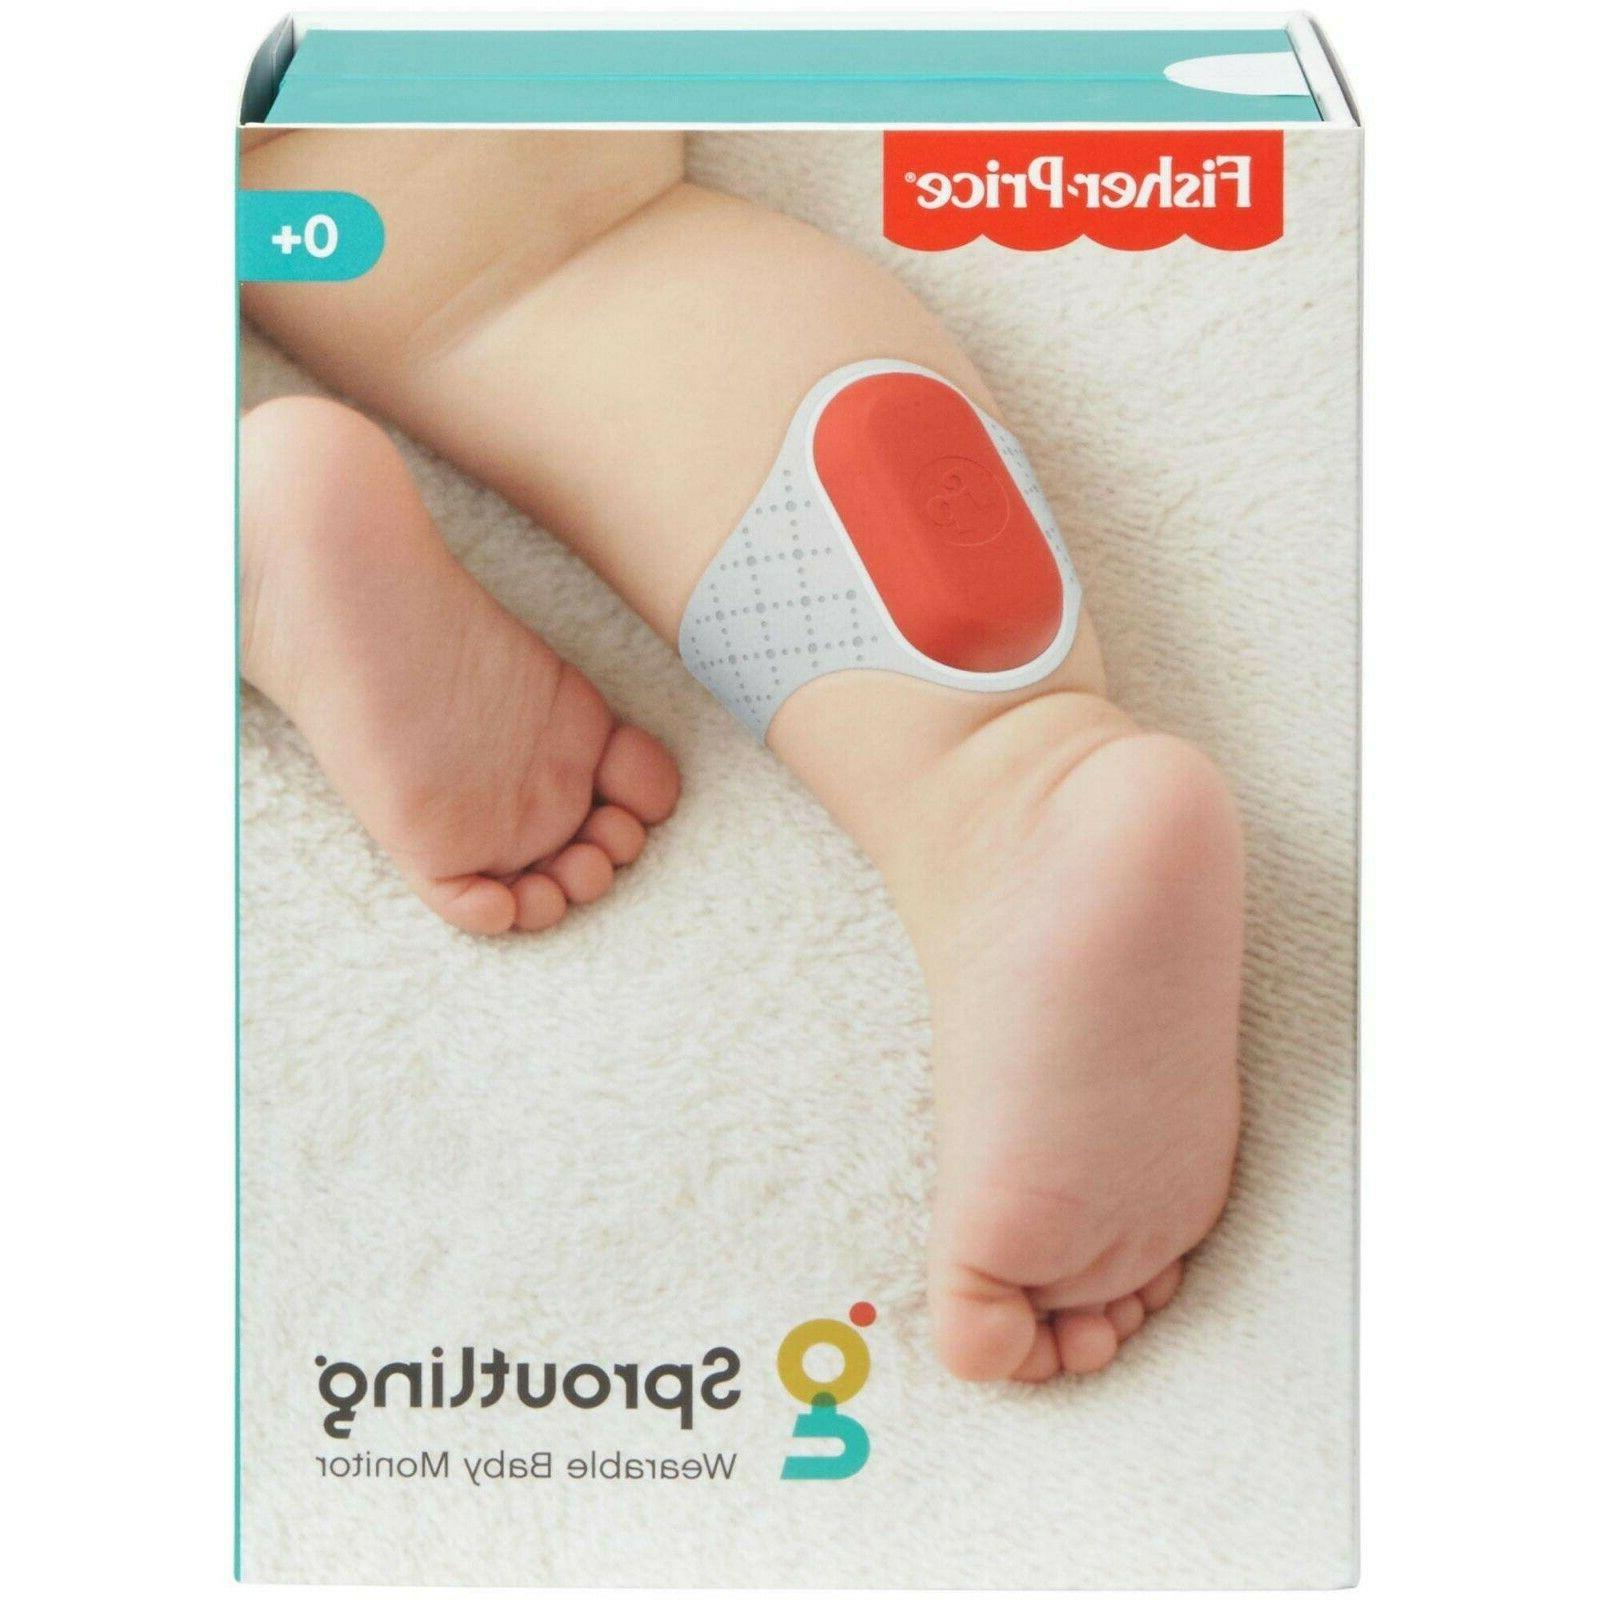 fisher price sproutling wearable baby monitor new